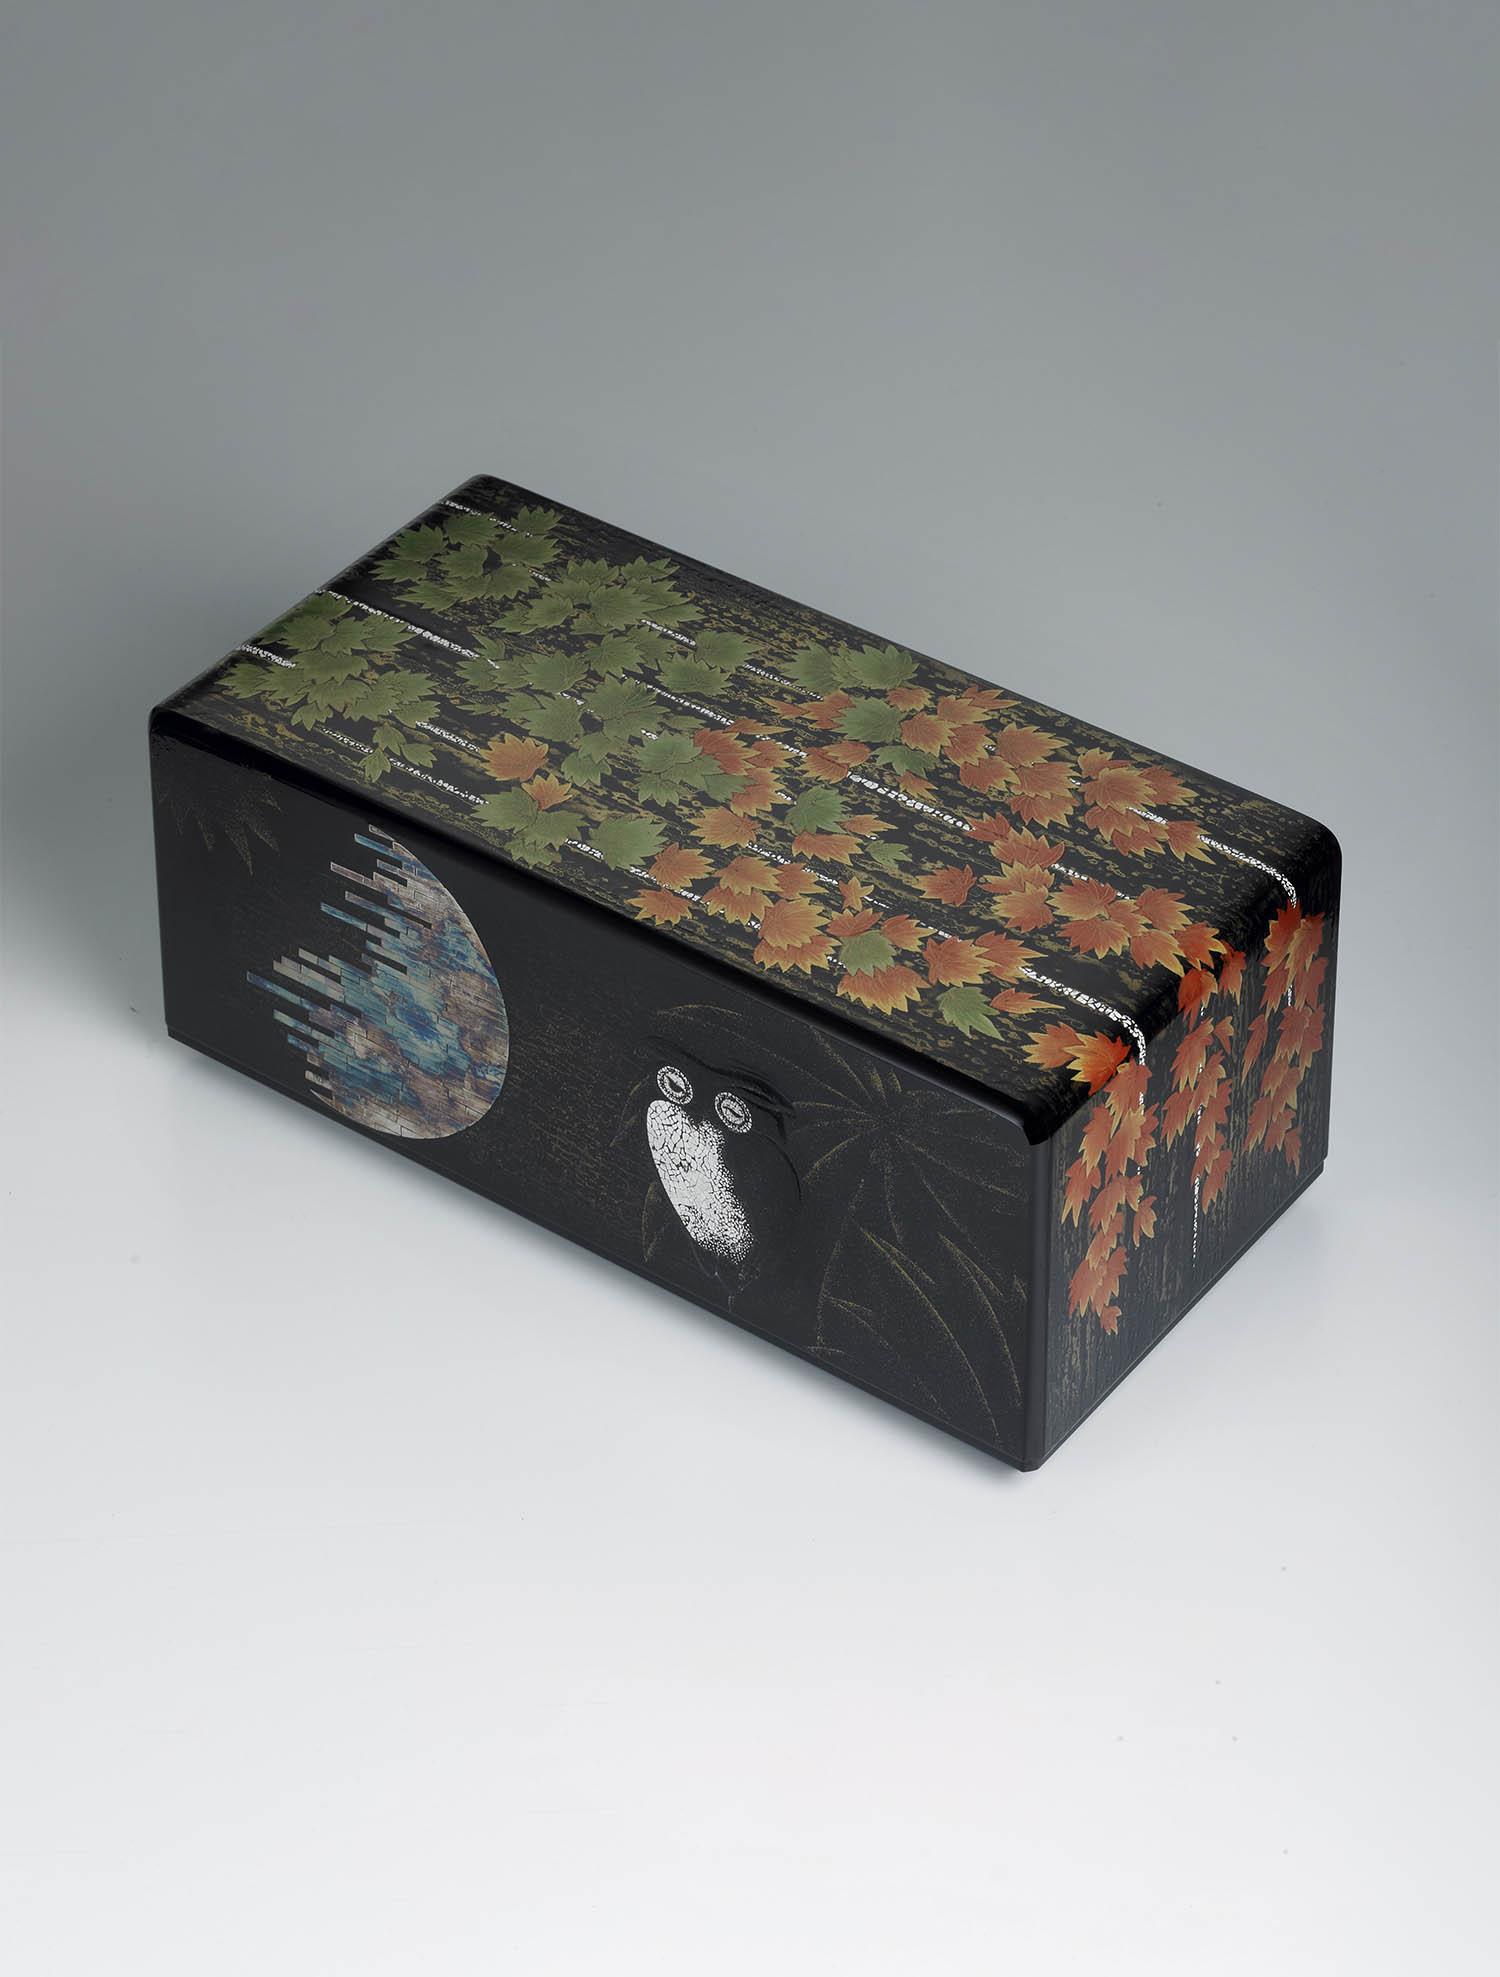 DOCUMENT BOX, by SAKASHITA Yoshiharu, 1990s